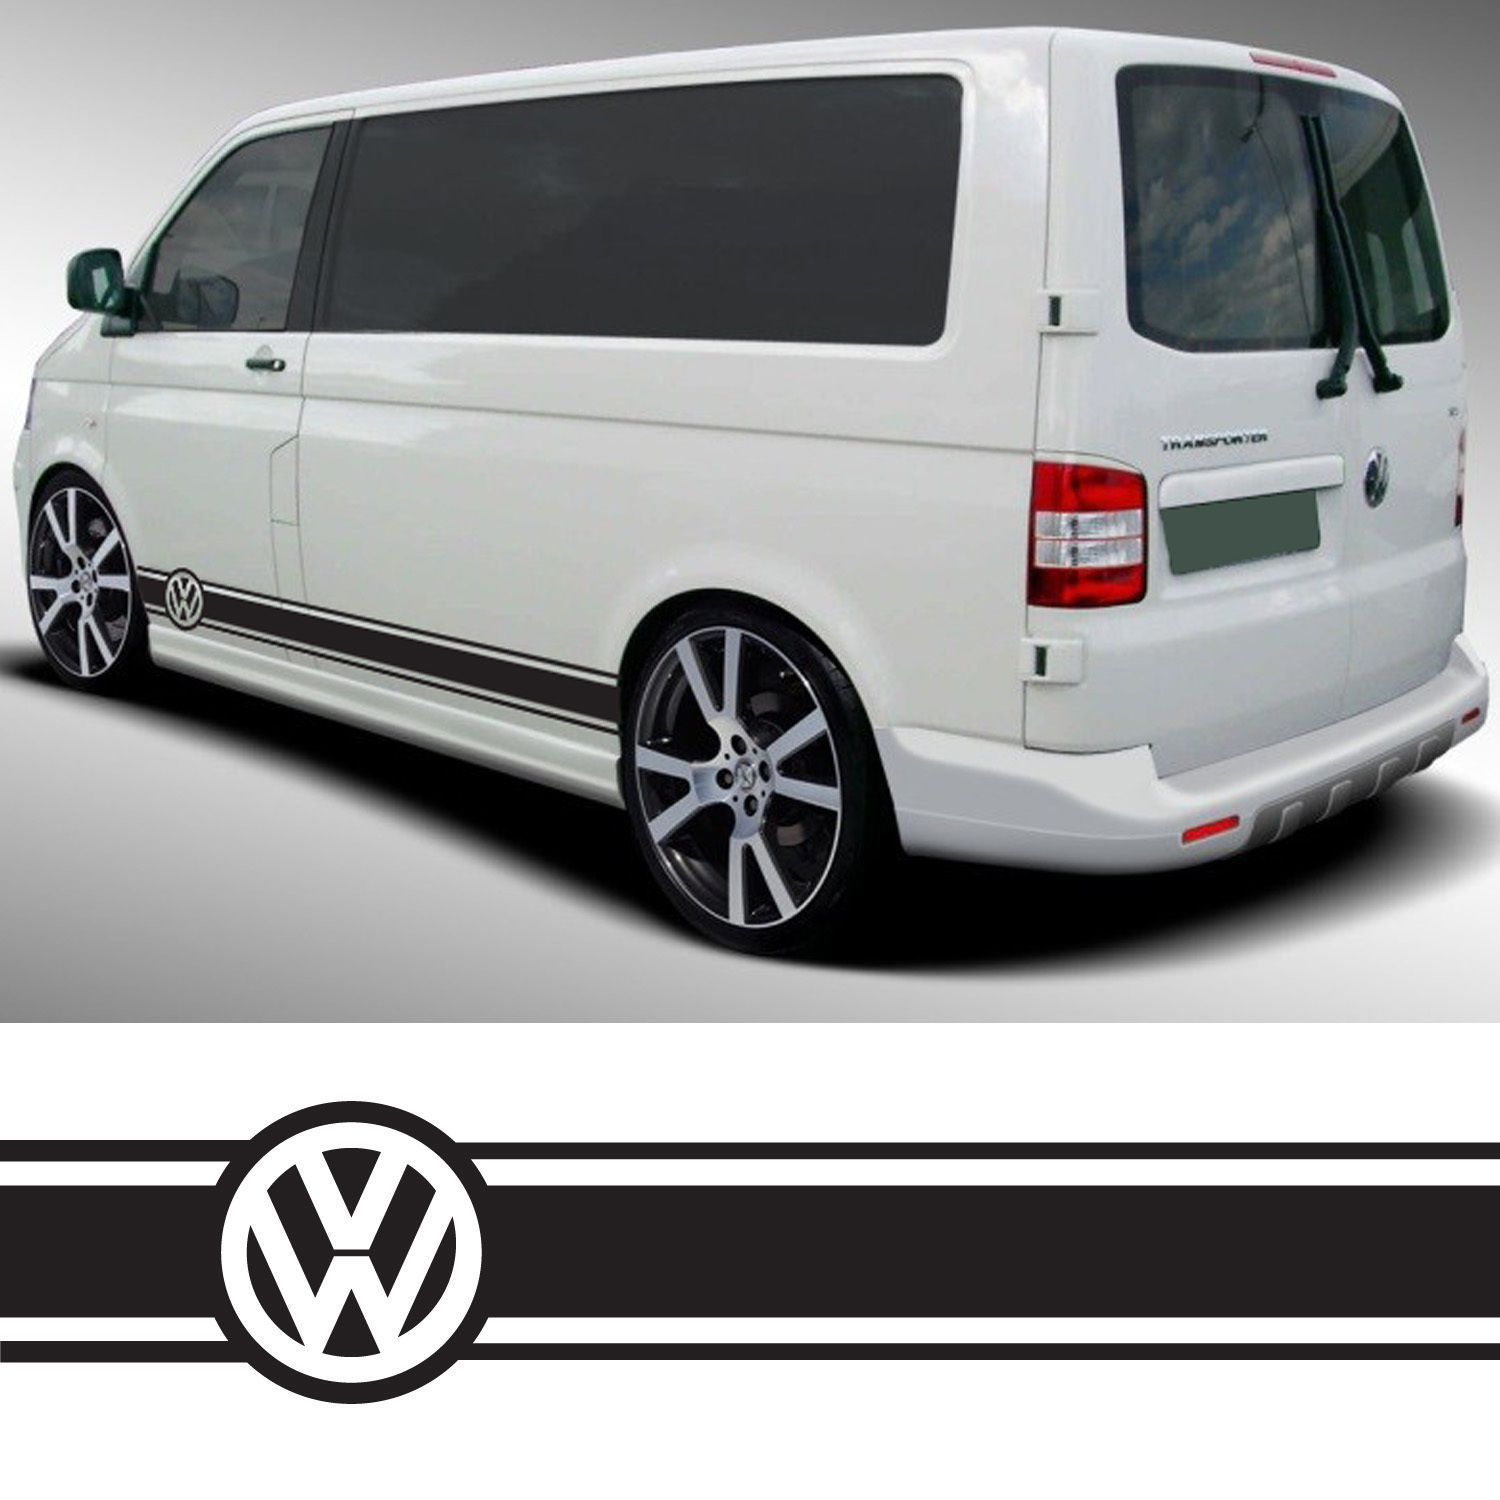 Vw Transporter Camper Van Caravelle Stripes Graphics Decals